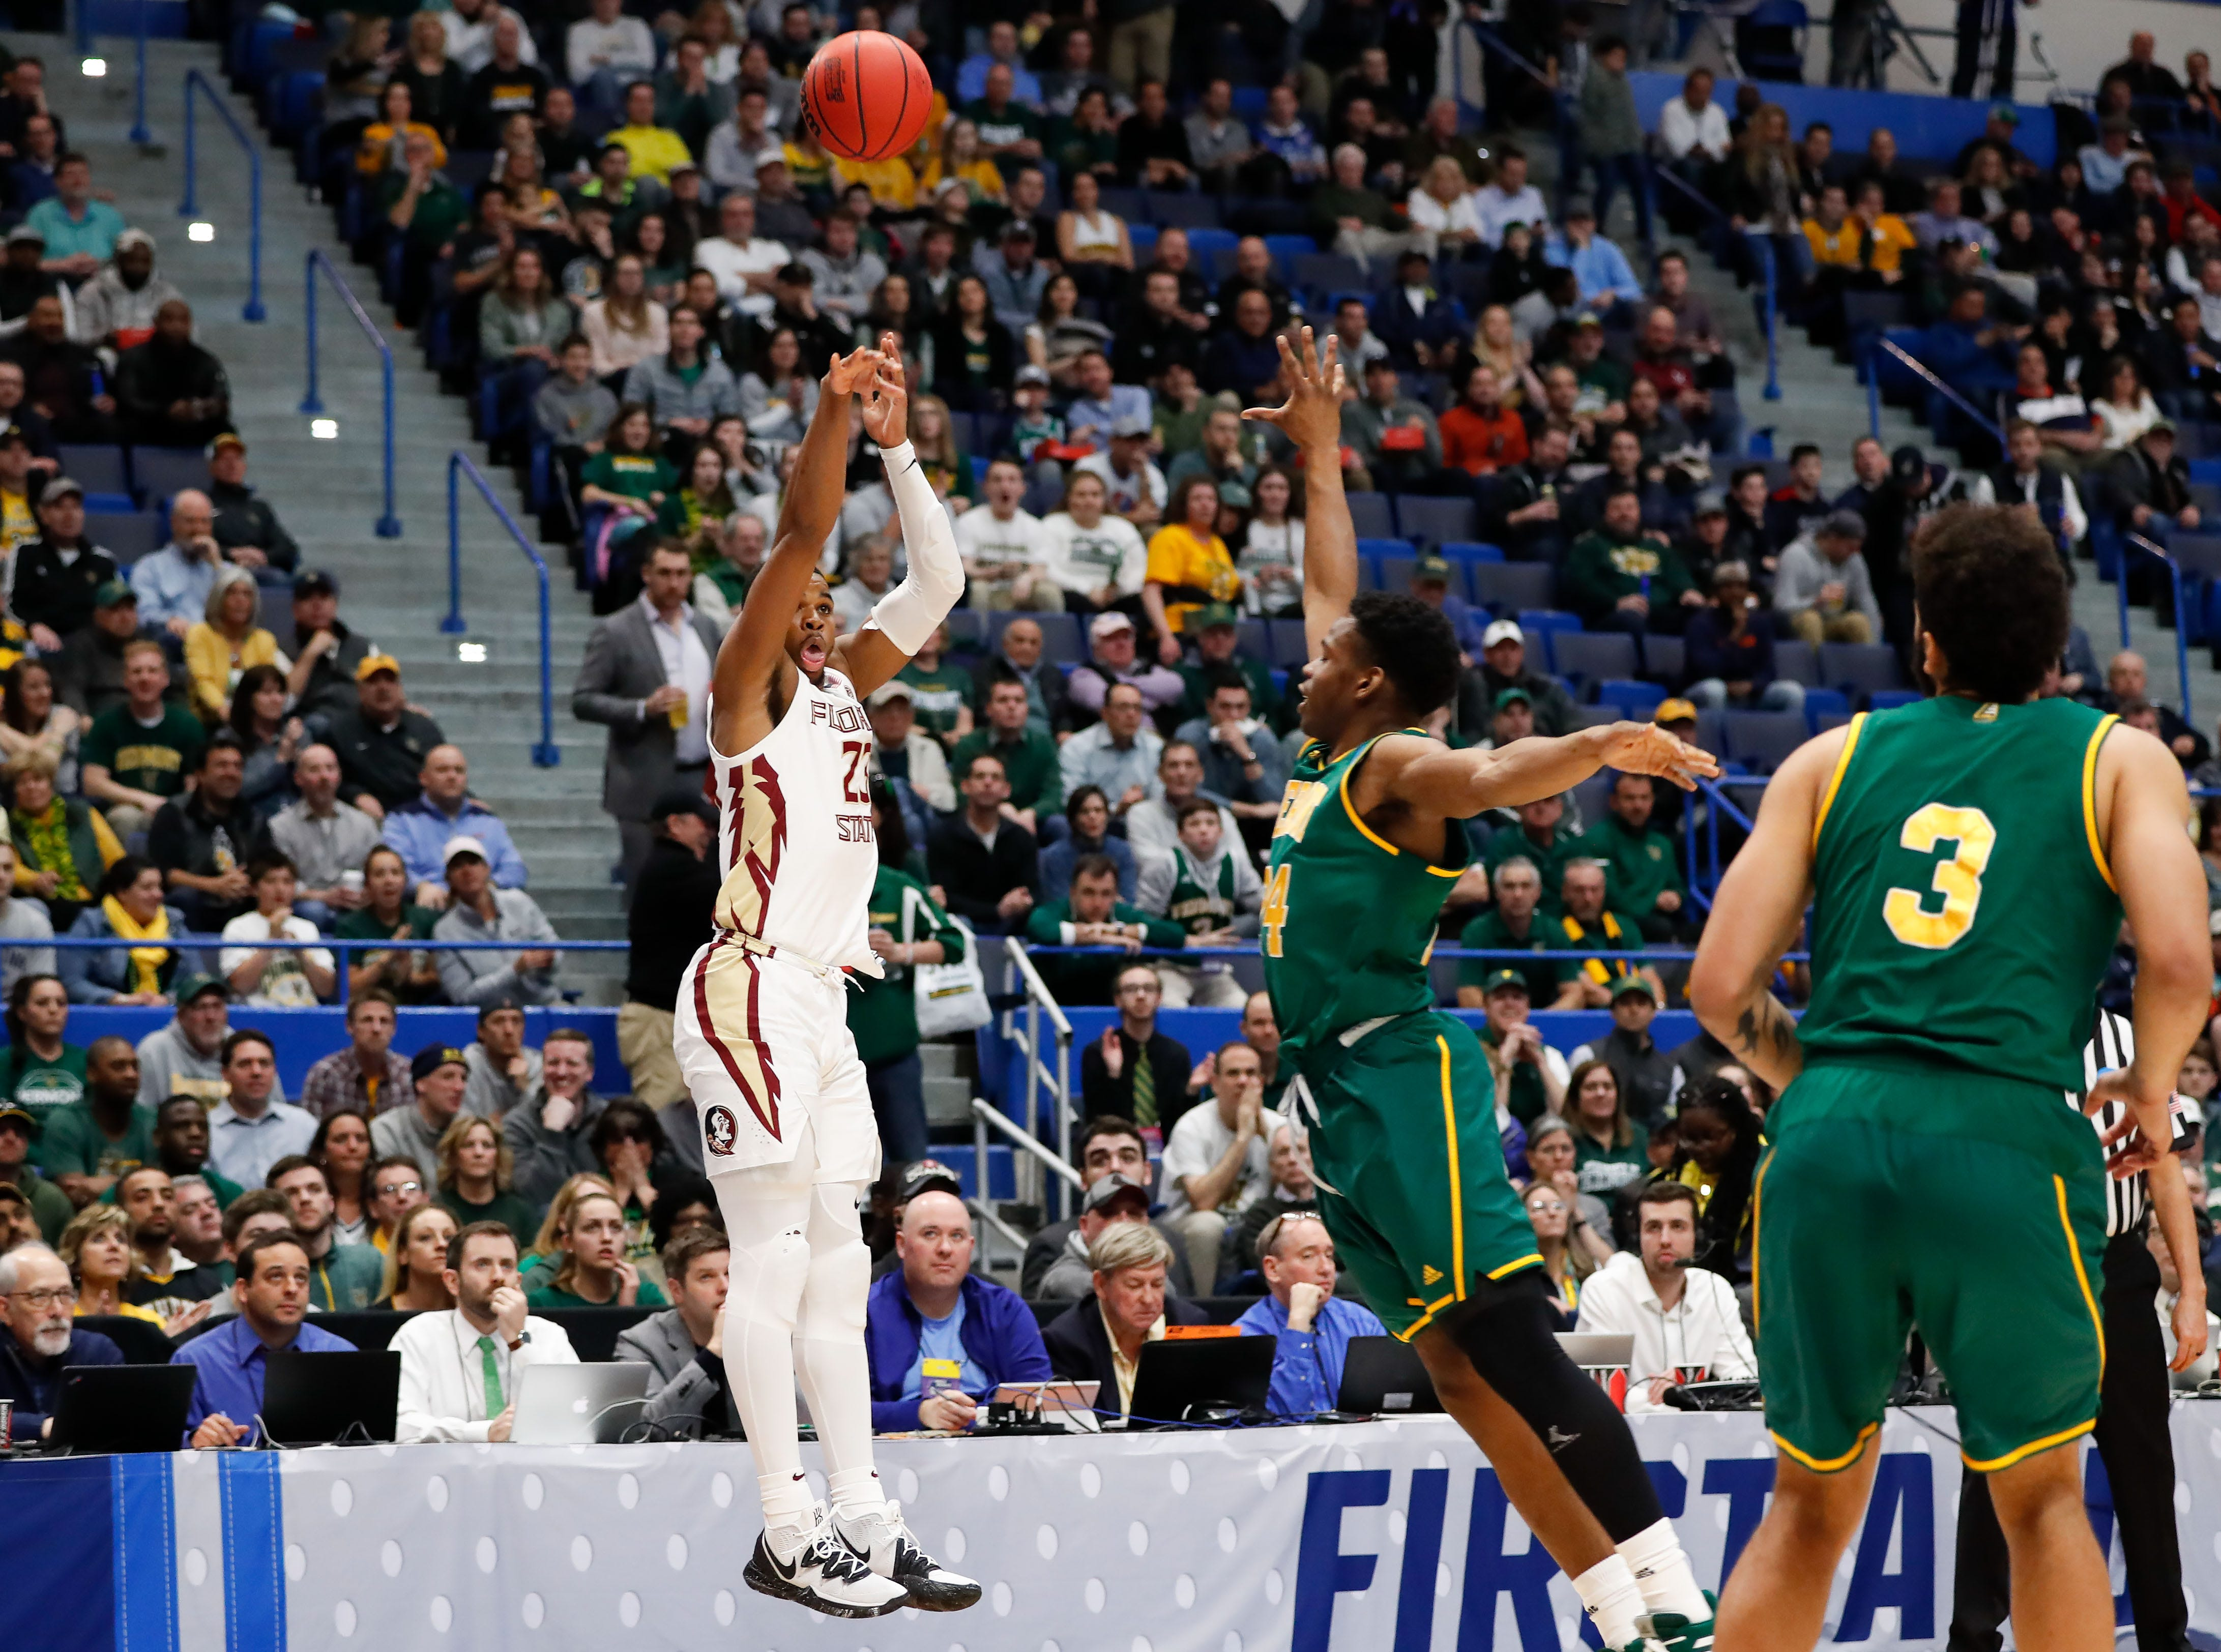 Mar 21, 2019; Hartford, CT, USA; Florida State Seminoles guard M.J. Walker (23) attempts a three point basket against the Vermont Catamounts during the first half in the first round of the 2019 NCAA Tournament at XL Center. Mandatory Credit: David Butler II-USA TODAY Sports